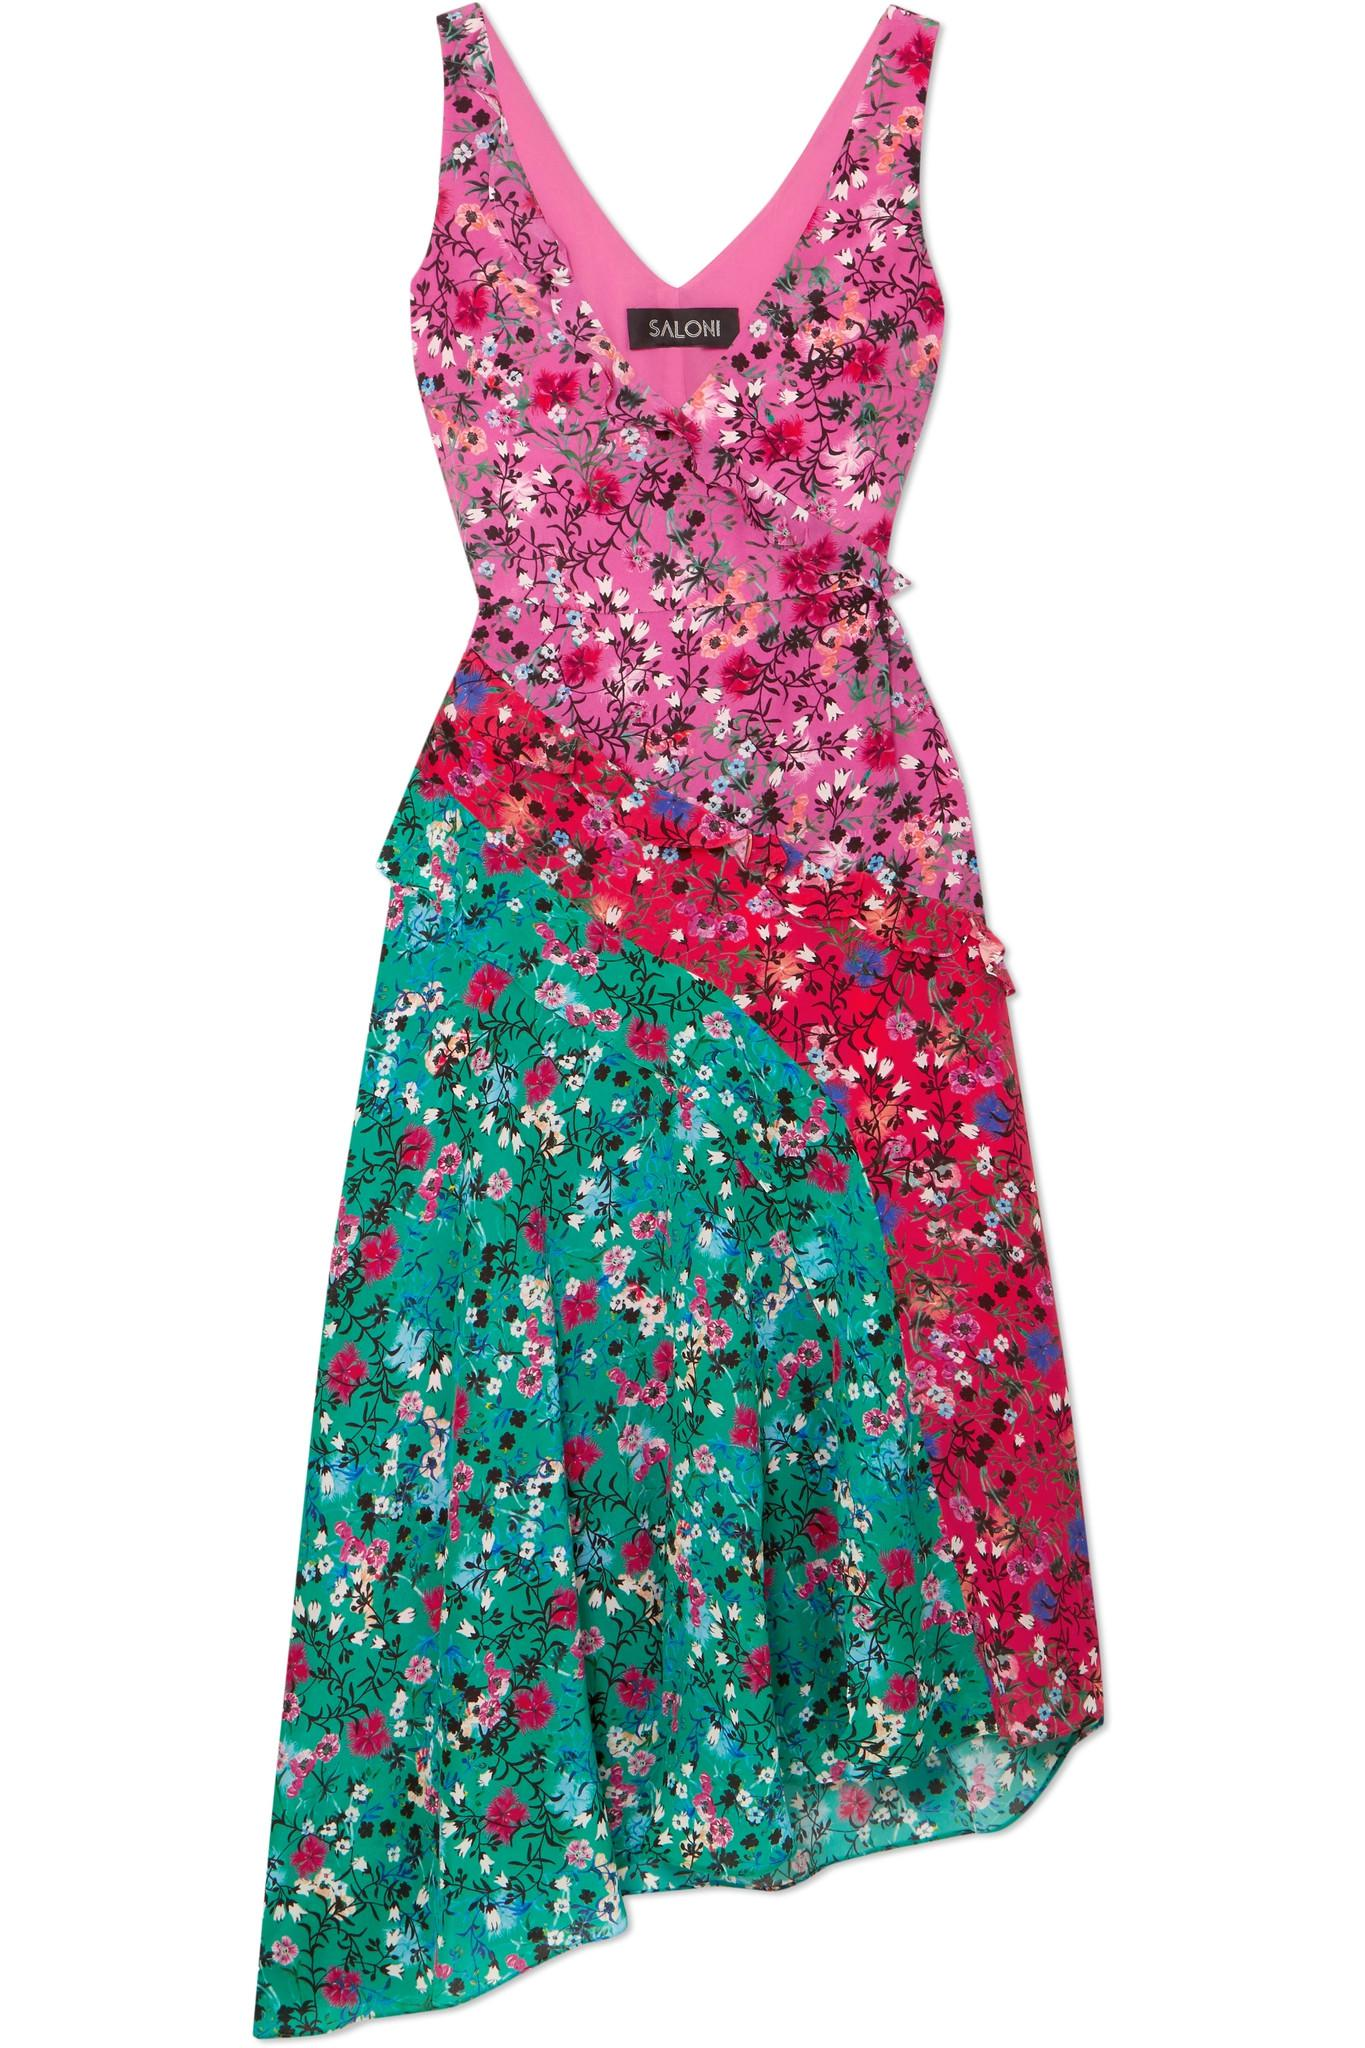 Aggie Ruffled Floral-print Silk Midi Dress - Turquoise Saloni Footlocker Outlet Wide Range Of Hot Sale Cheap Online Looking For For Sale Hot Sale Sale Online BrbLNdNx